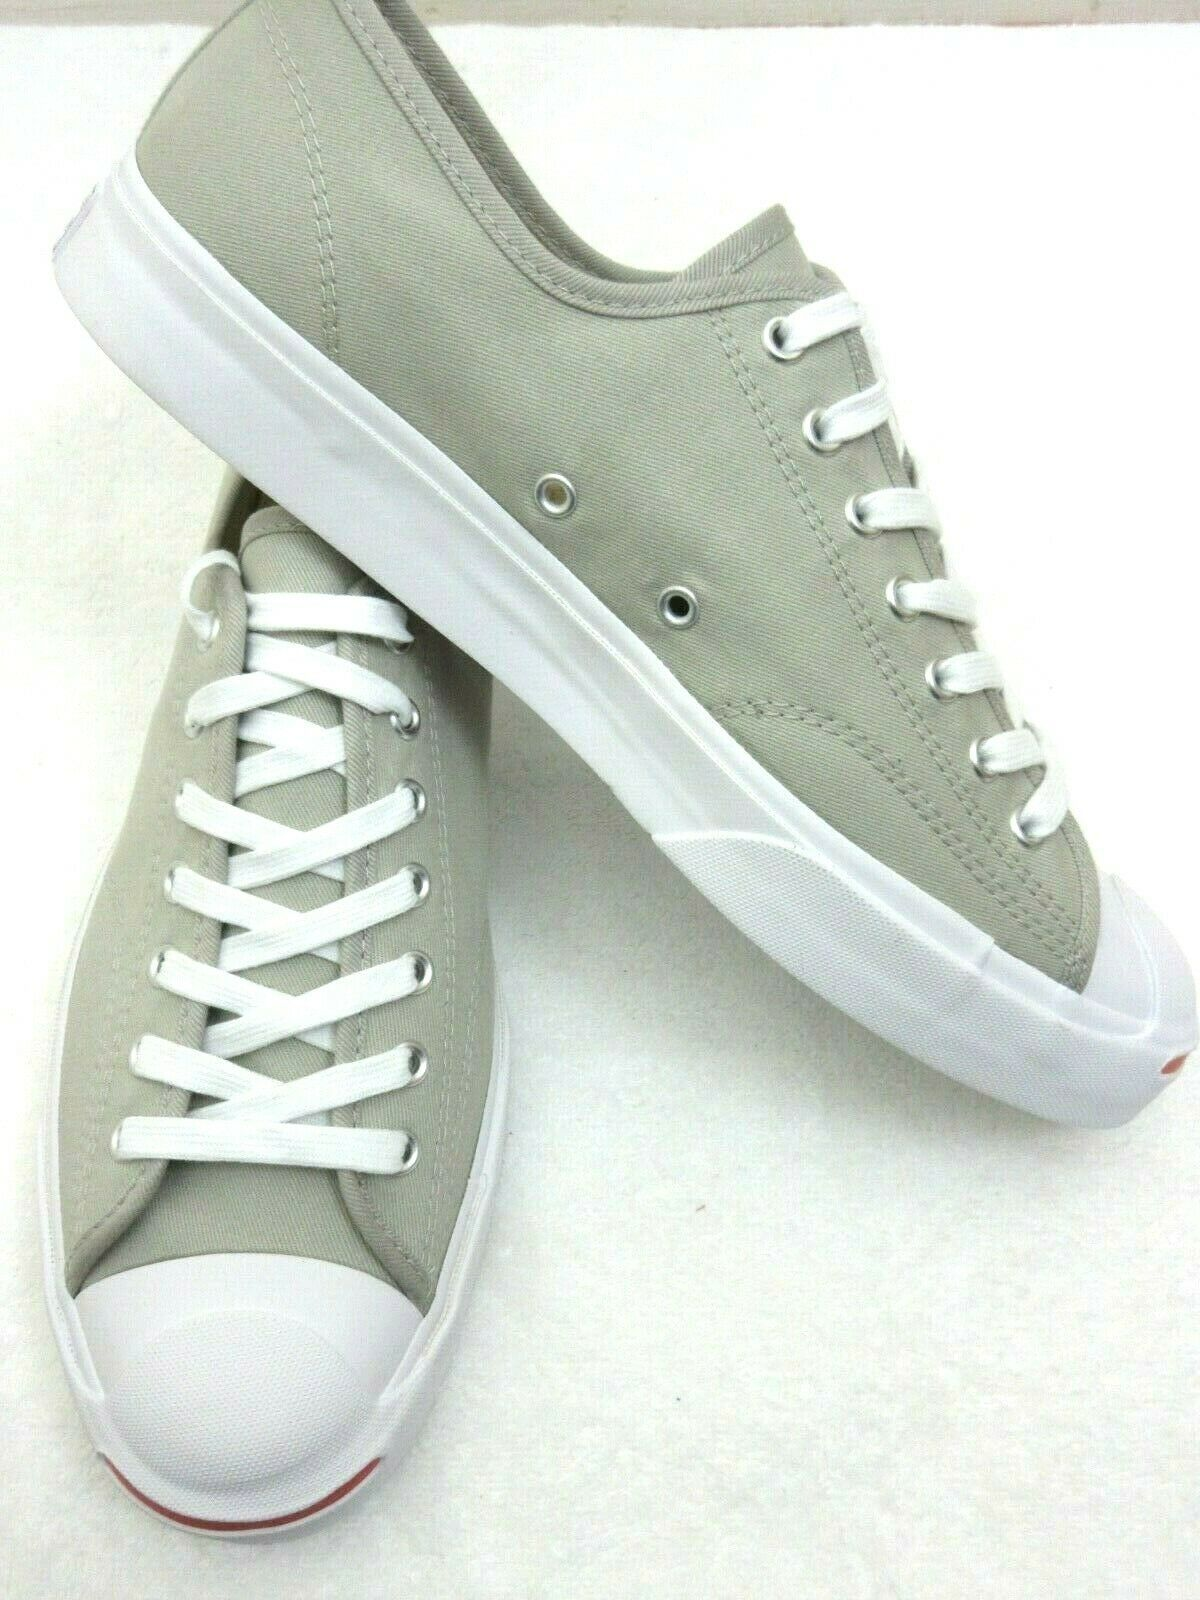 Converse Mens Jack Purcell OX Canvas Birch Bark White Habanero Red Shoes Sz 9.5 image 5